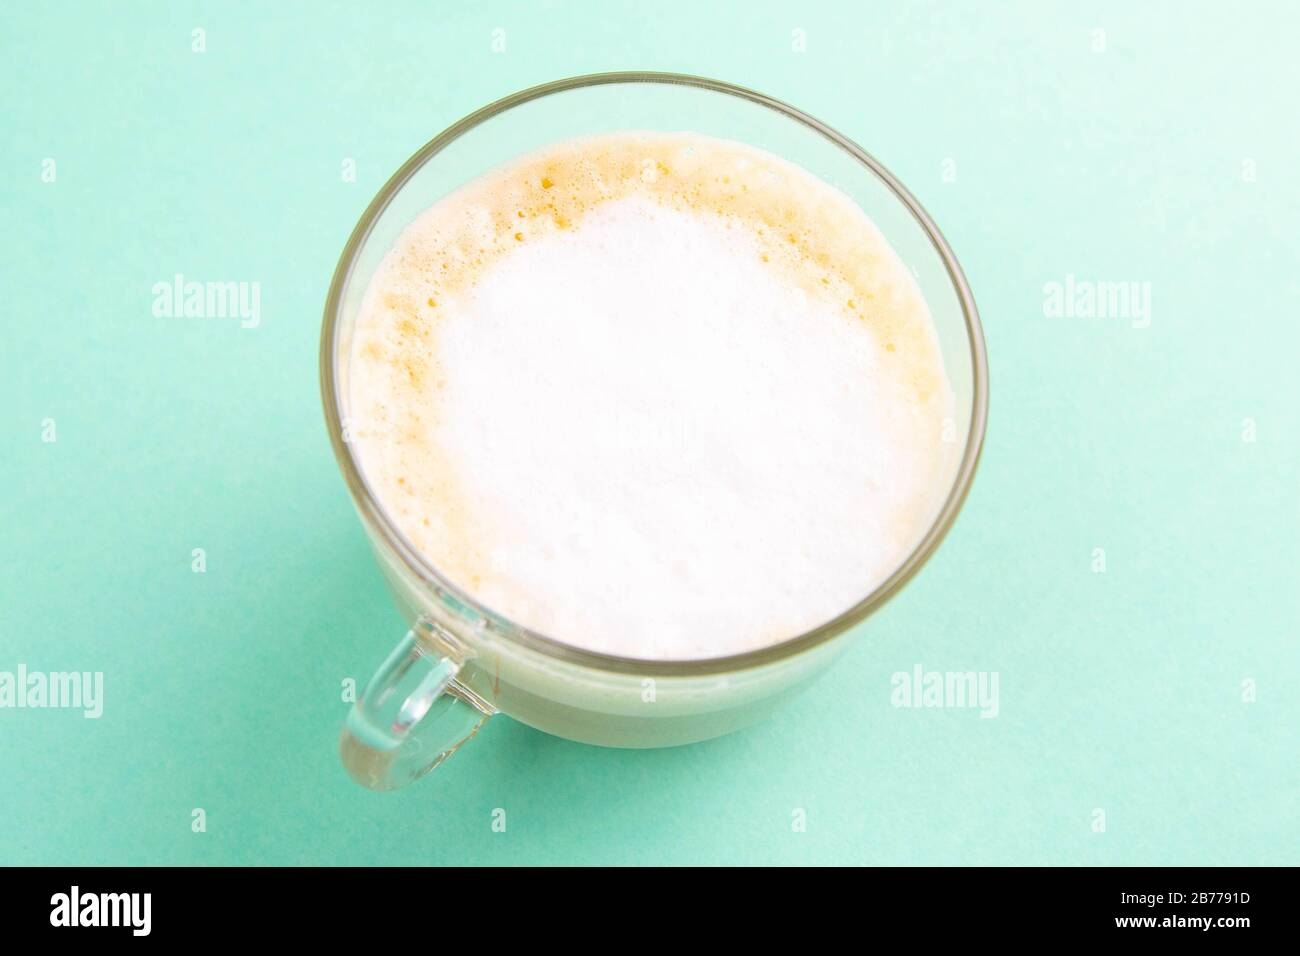 Latte Coffee In Elegant Transparent Glass With Whipped Cream On The Mint Background Stock Photo Alamy